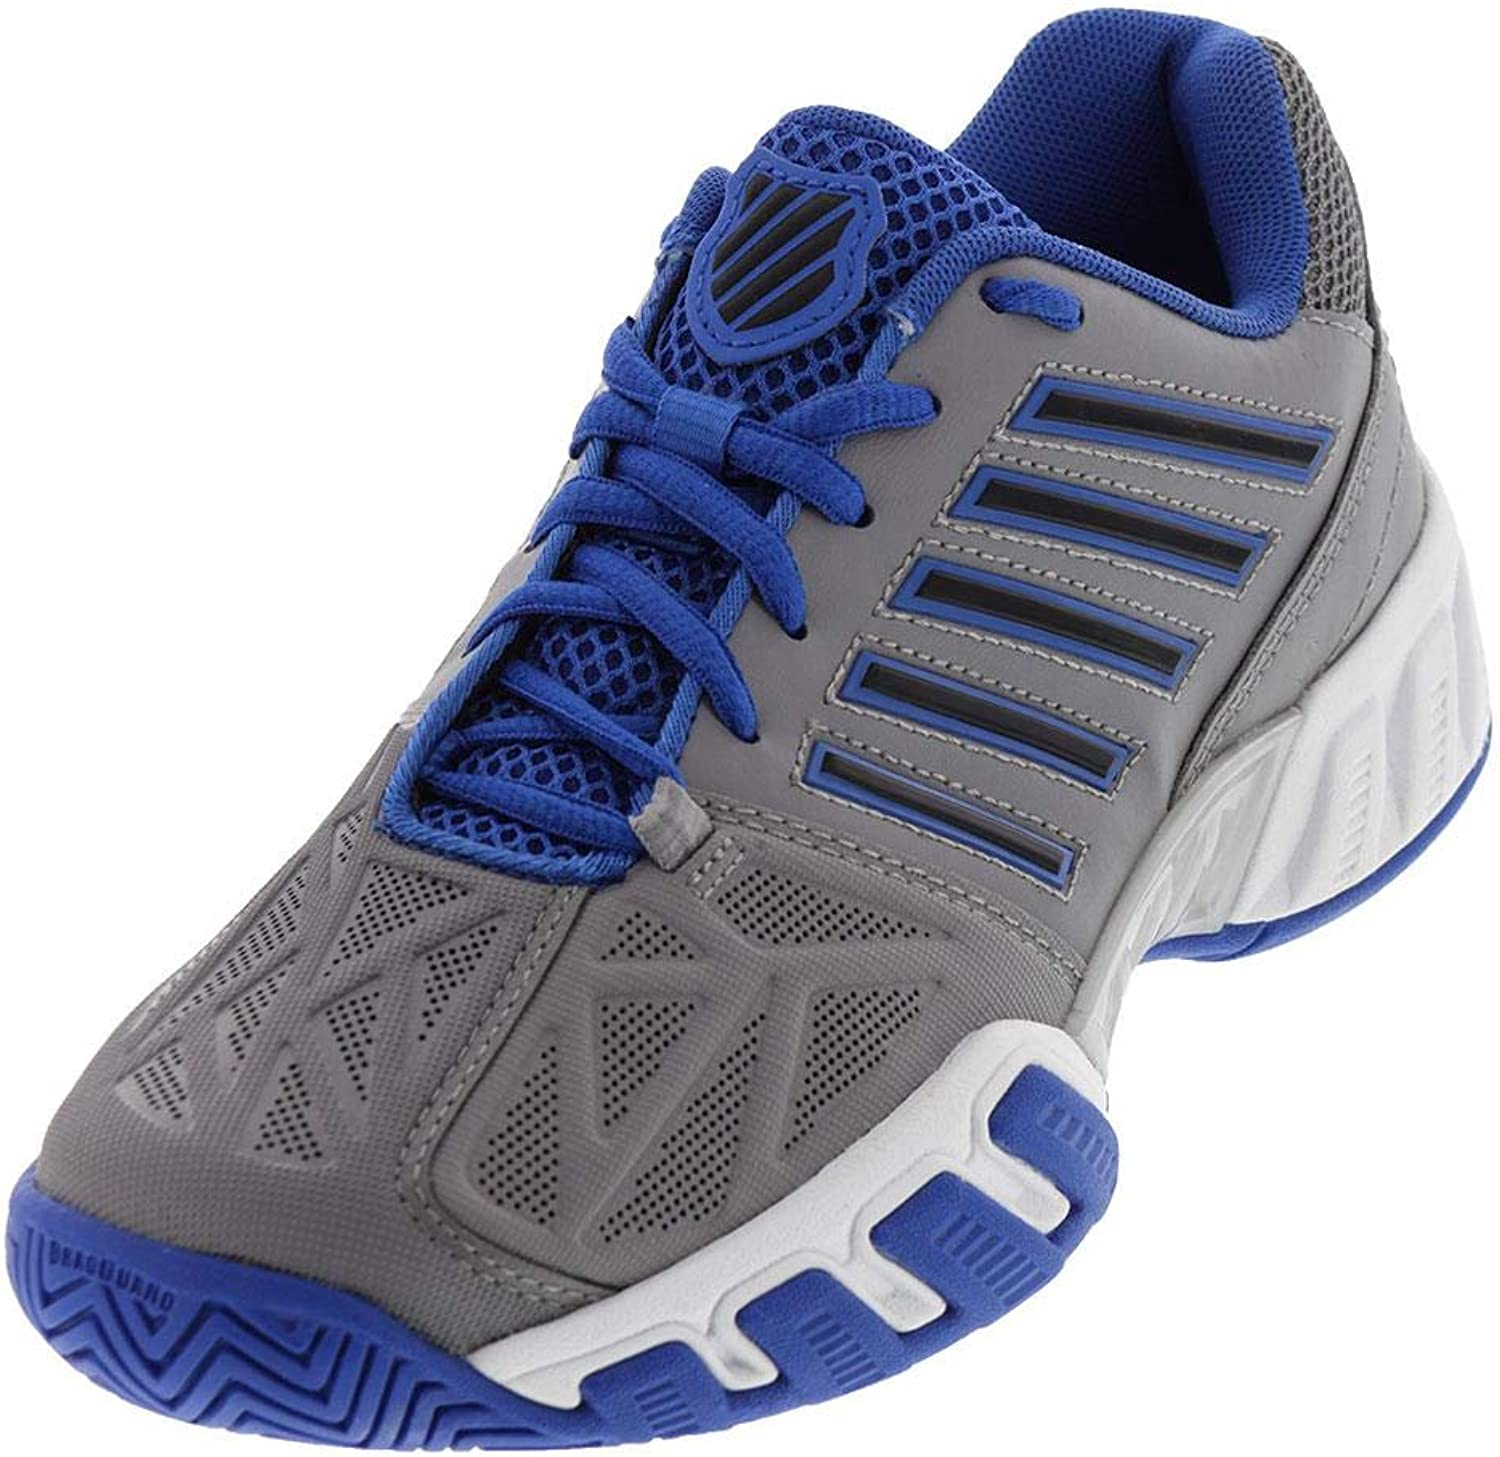 K-Swiss Bigshot Light 3 Tennis shoes - Boys